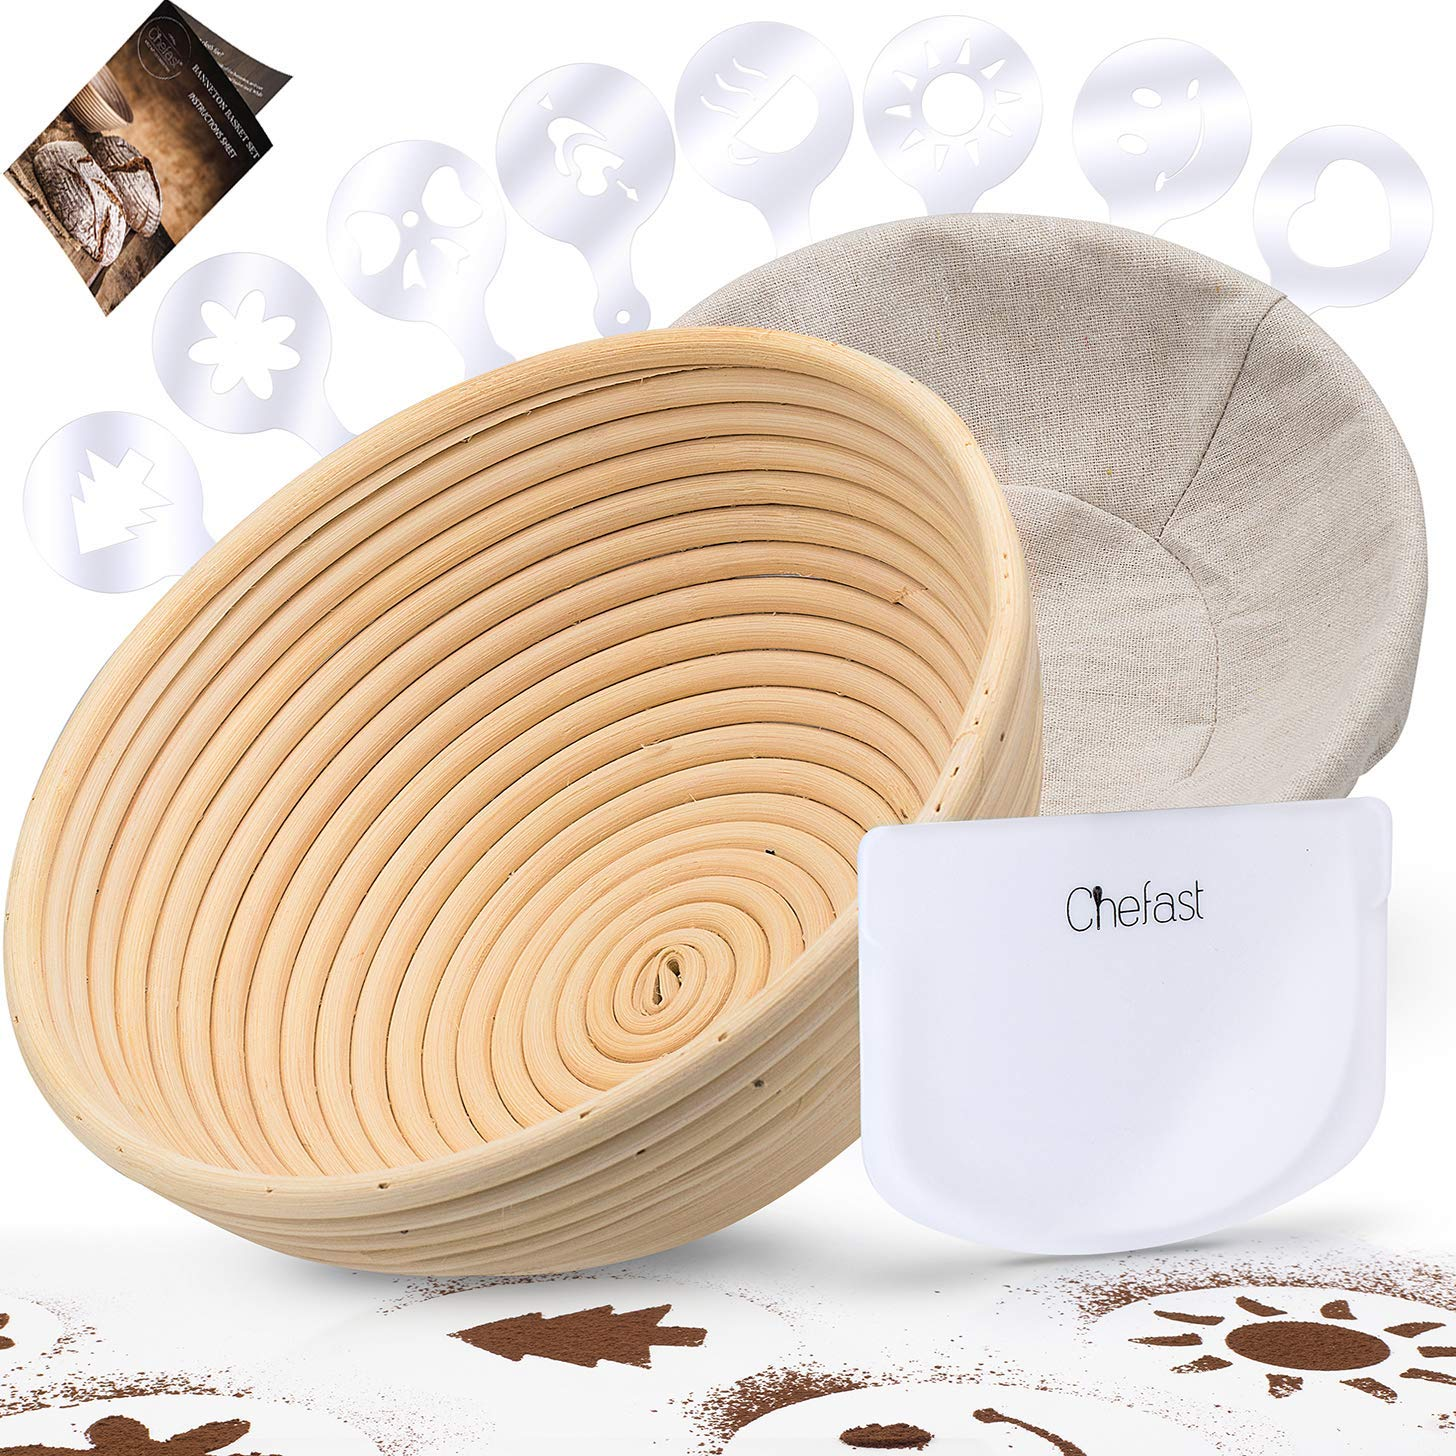 Chefast Banneton Proofing Basket Set: Combo Kit of 9.5'' Natural Rattan Basket with Brotform Cloth Liner, 8 Bread Stencils and Bowl/Dough Scraper + Instructions - Make Perfectly Round Sourdough Boules by Chefast